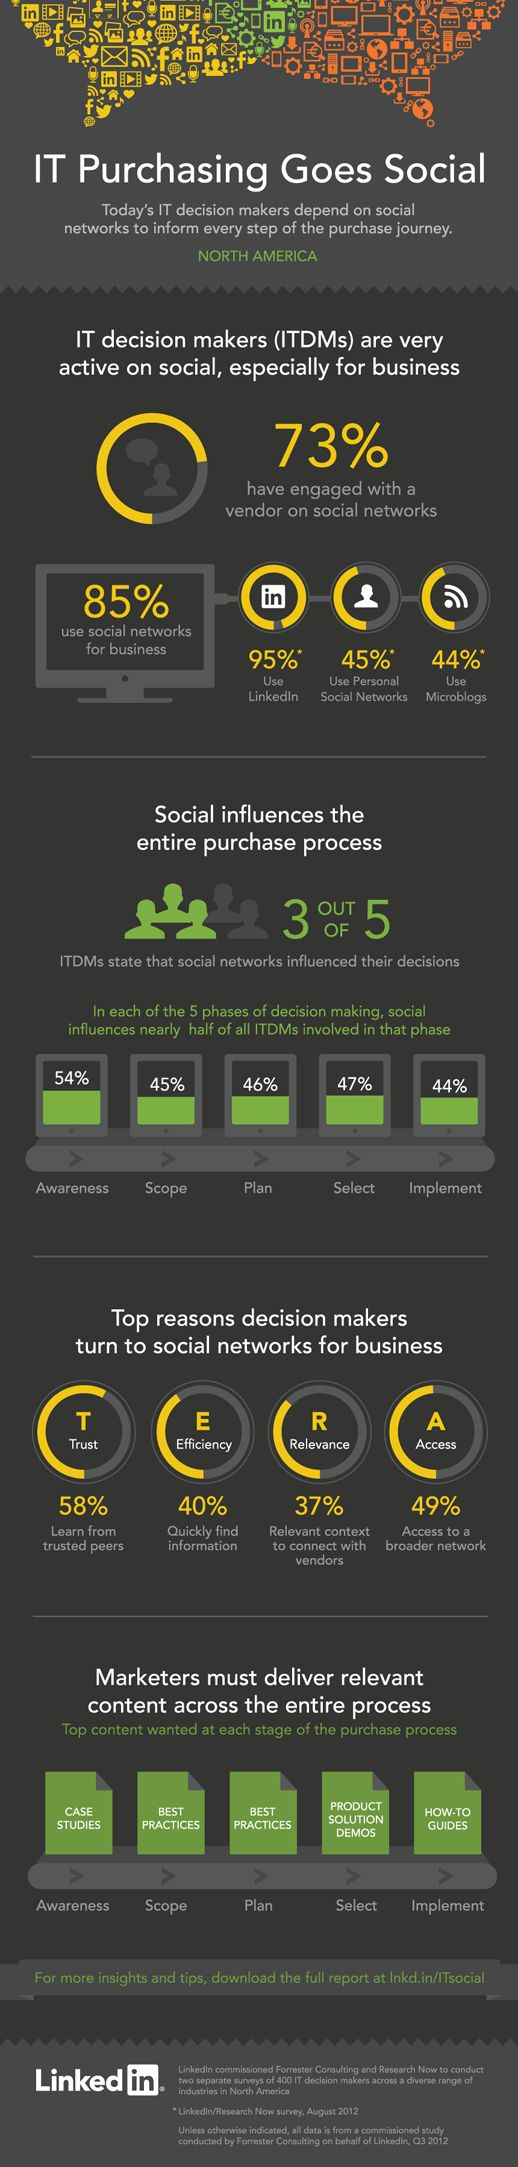 [infographic]  Did you know that IT Decision Makers are heavy users of social networks? In fact, 85% have used at least one social network for business purposes. And 1 out of 2 e IT Decision Maker is influenced by social media in each phase of the decision making process.